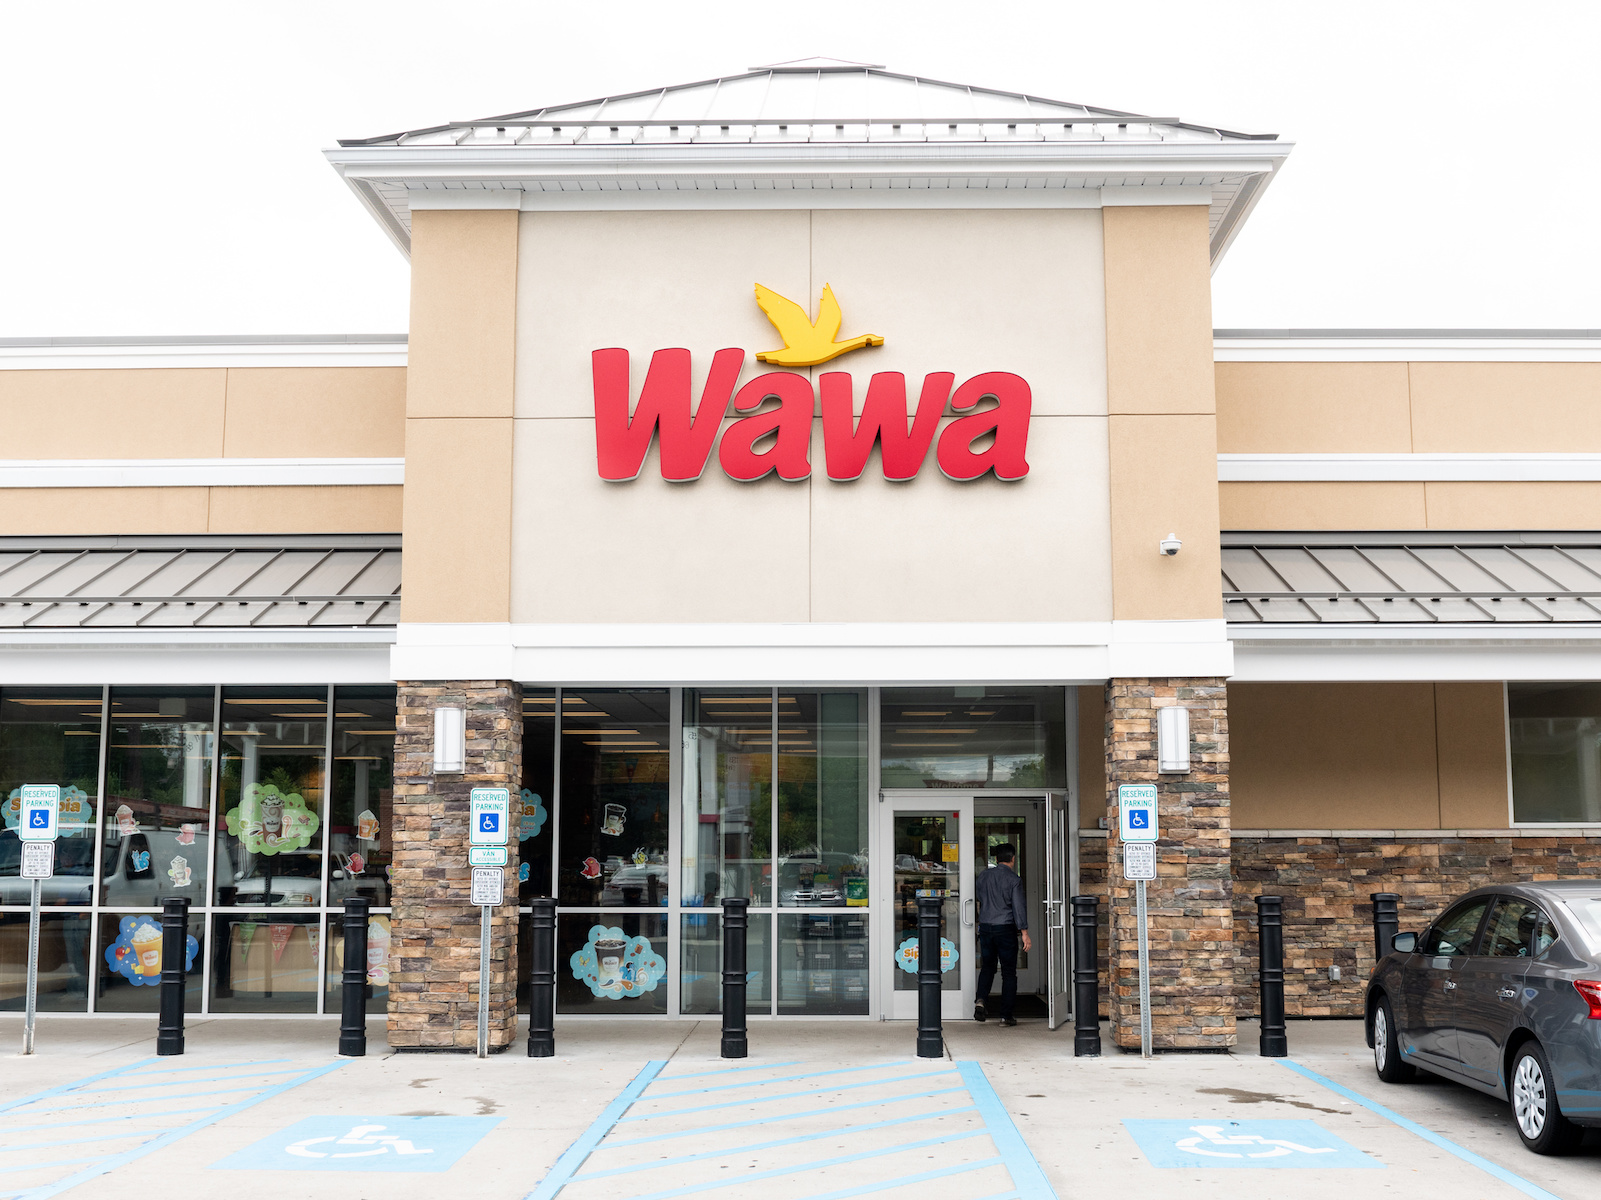 Wawa Day 2019: Here's When You can Score a Free Coffee